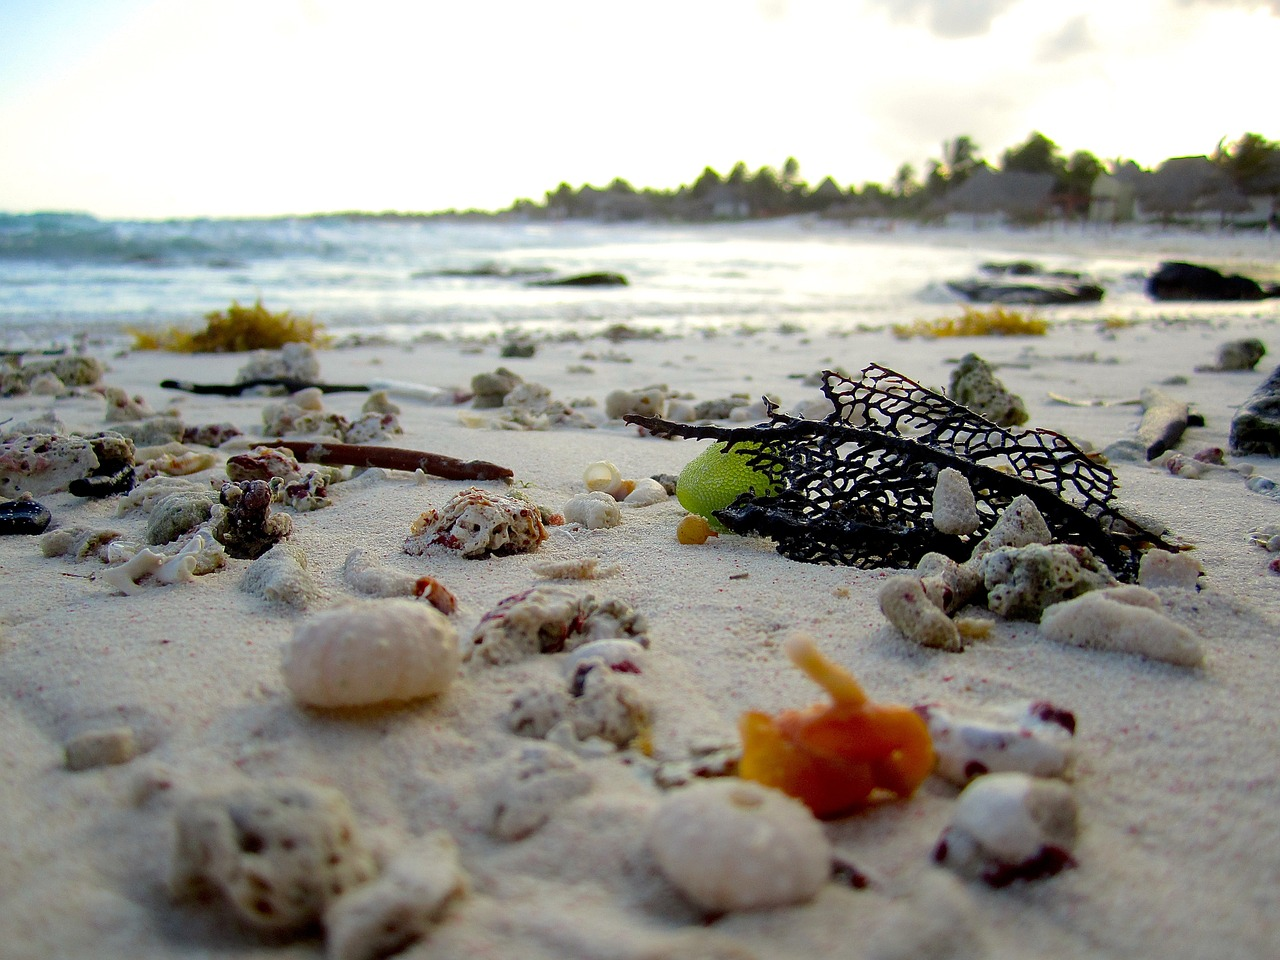 Beach shells shore coral travel